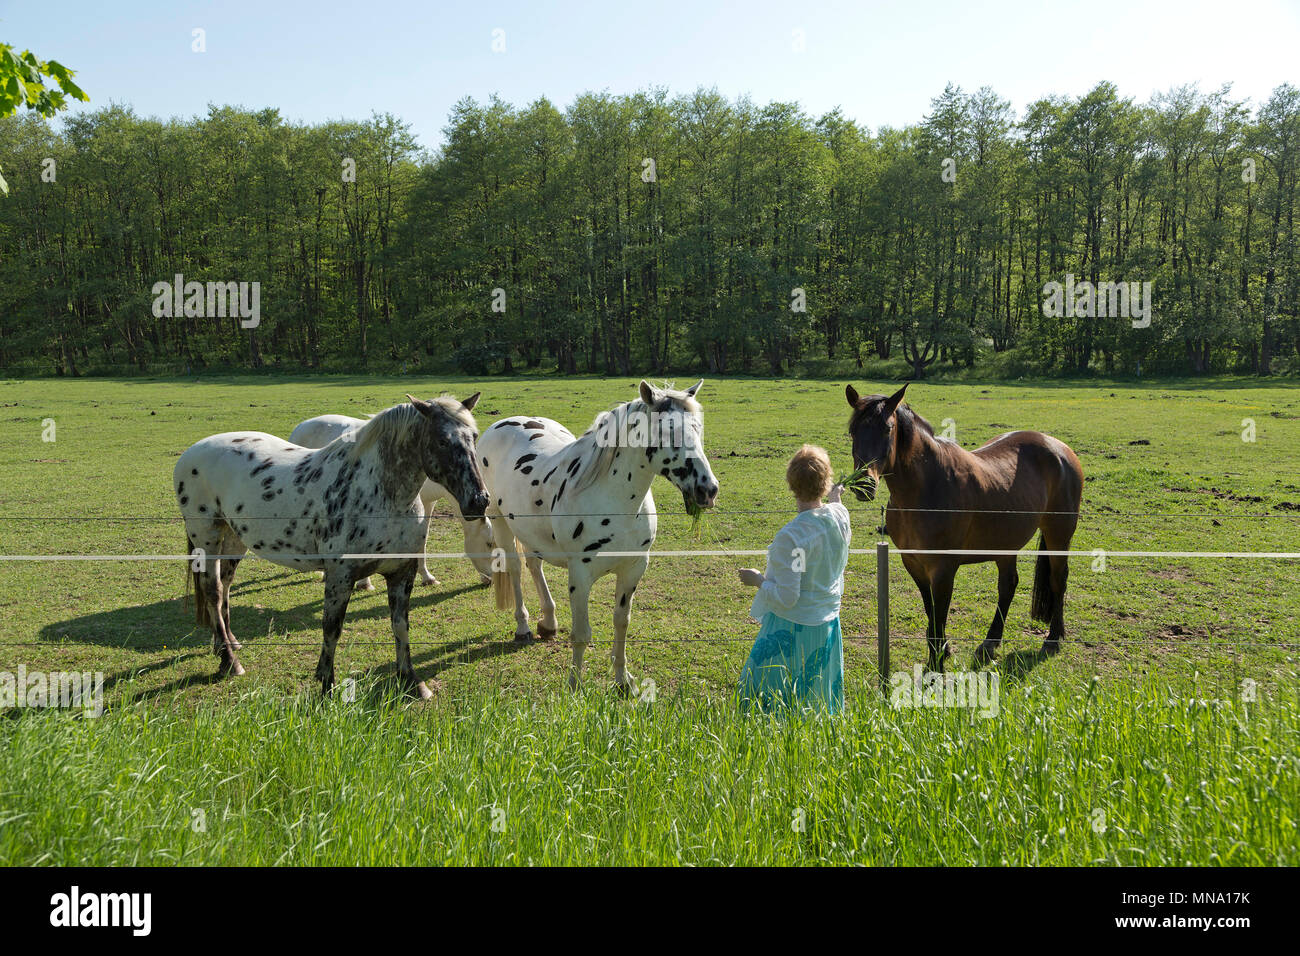 woman giving grass to horses, Klein Bollhagen near Kuehlungsborn, Mecklenburg-West Pomerania, Germany - Stock Image